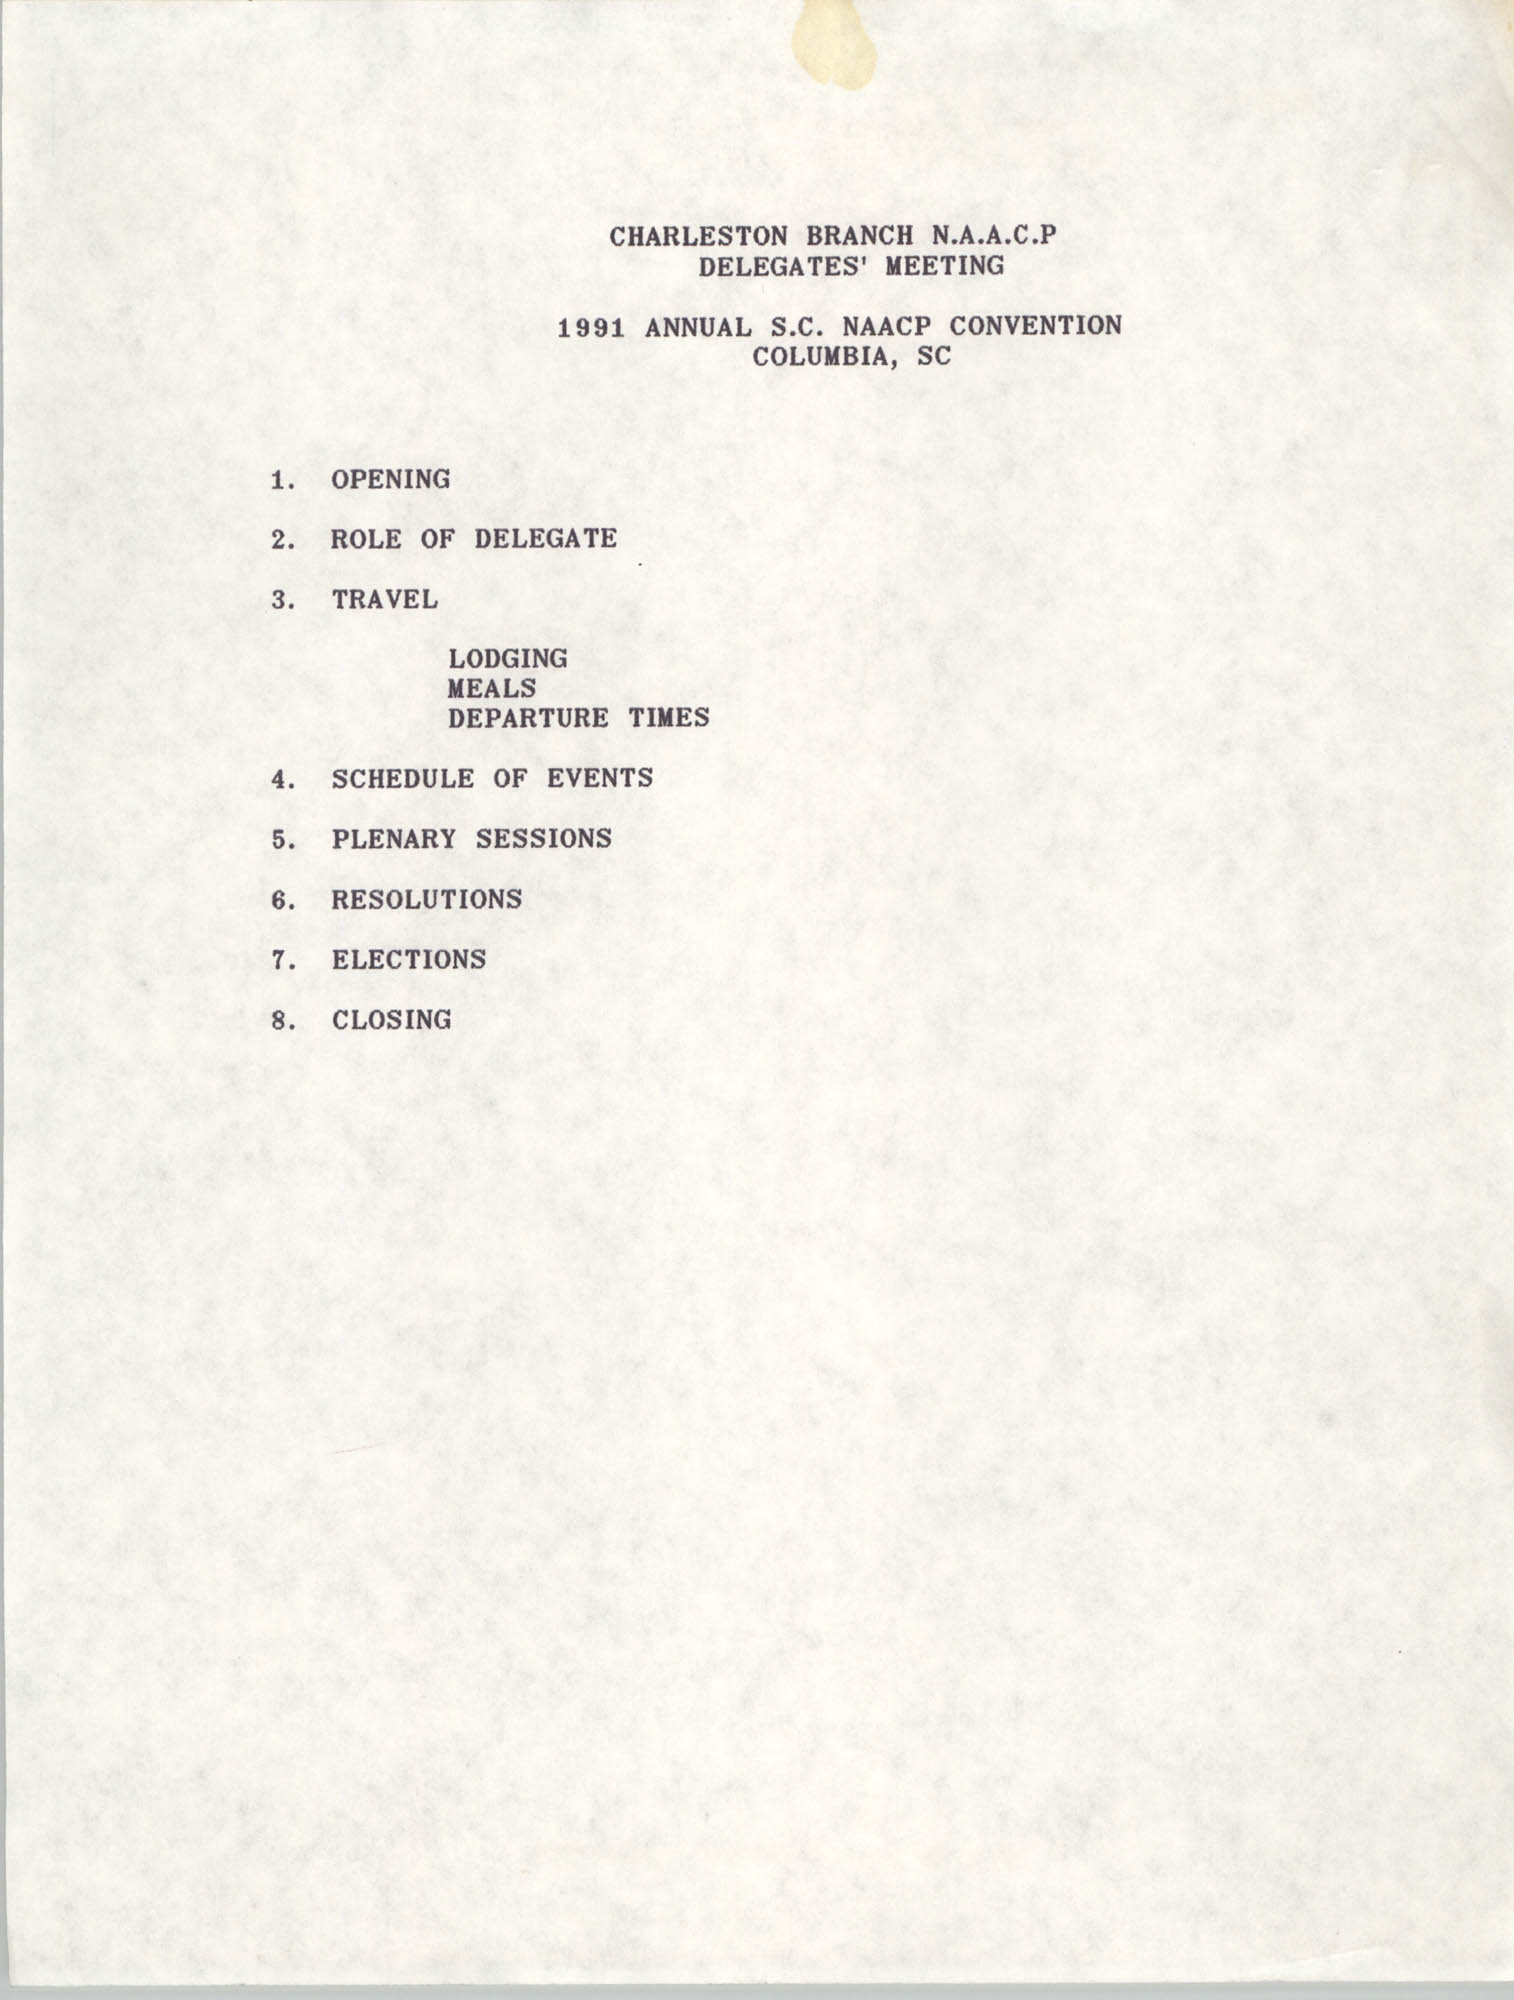 Charleston Branch NAACP 1991 Annual S.C. NAACP Convention Meeting Agenda